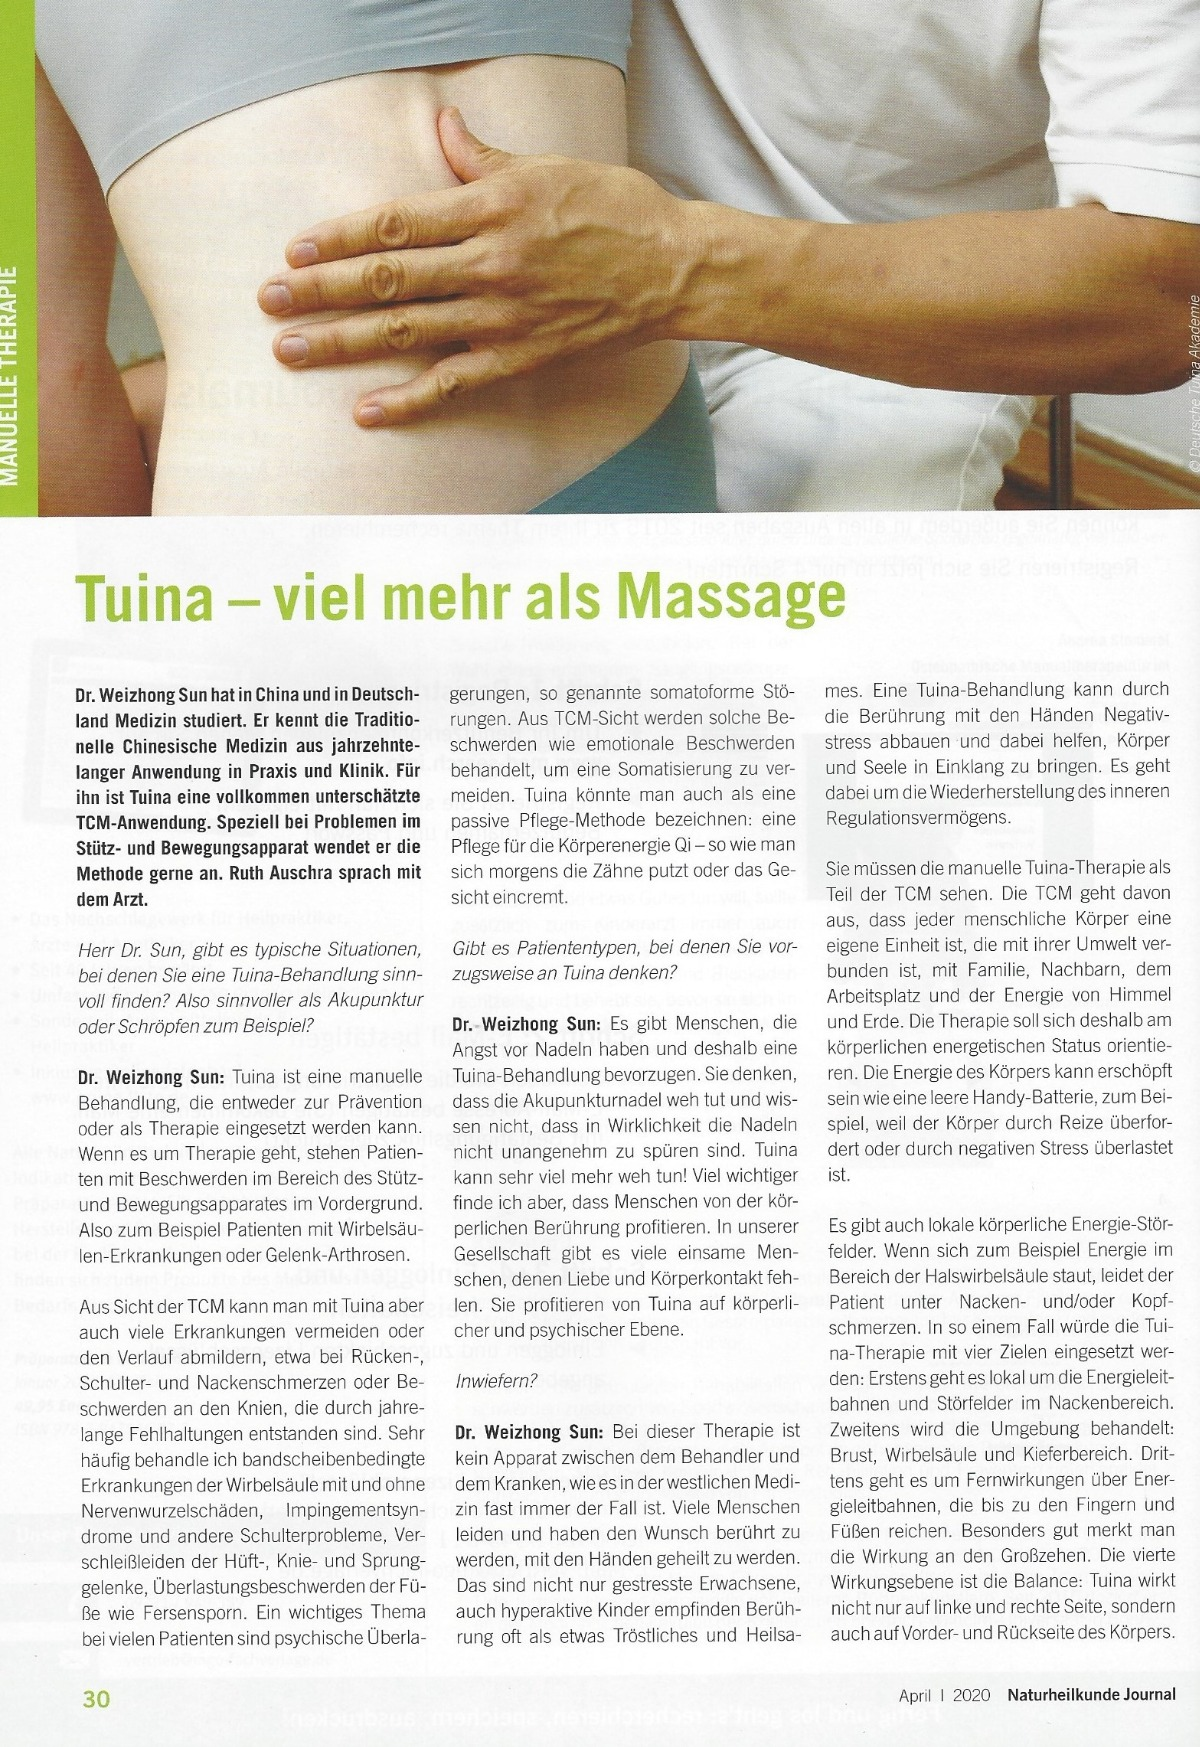 https://www.tuina-akademie.de/uploads/tuina/courses/258/file_1587055217_289392.pdf